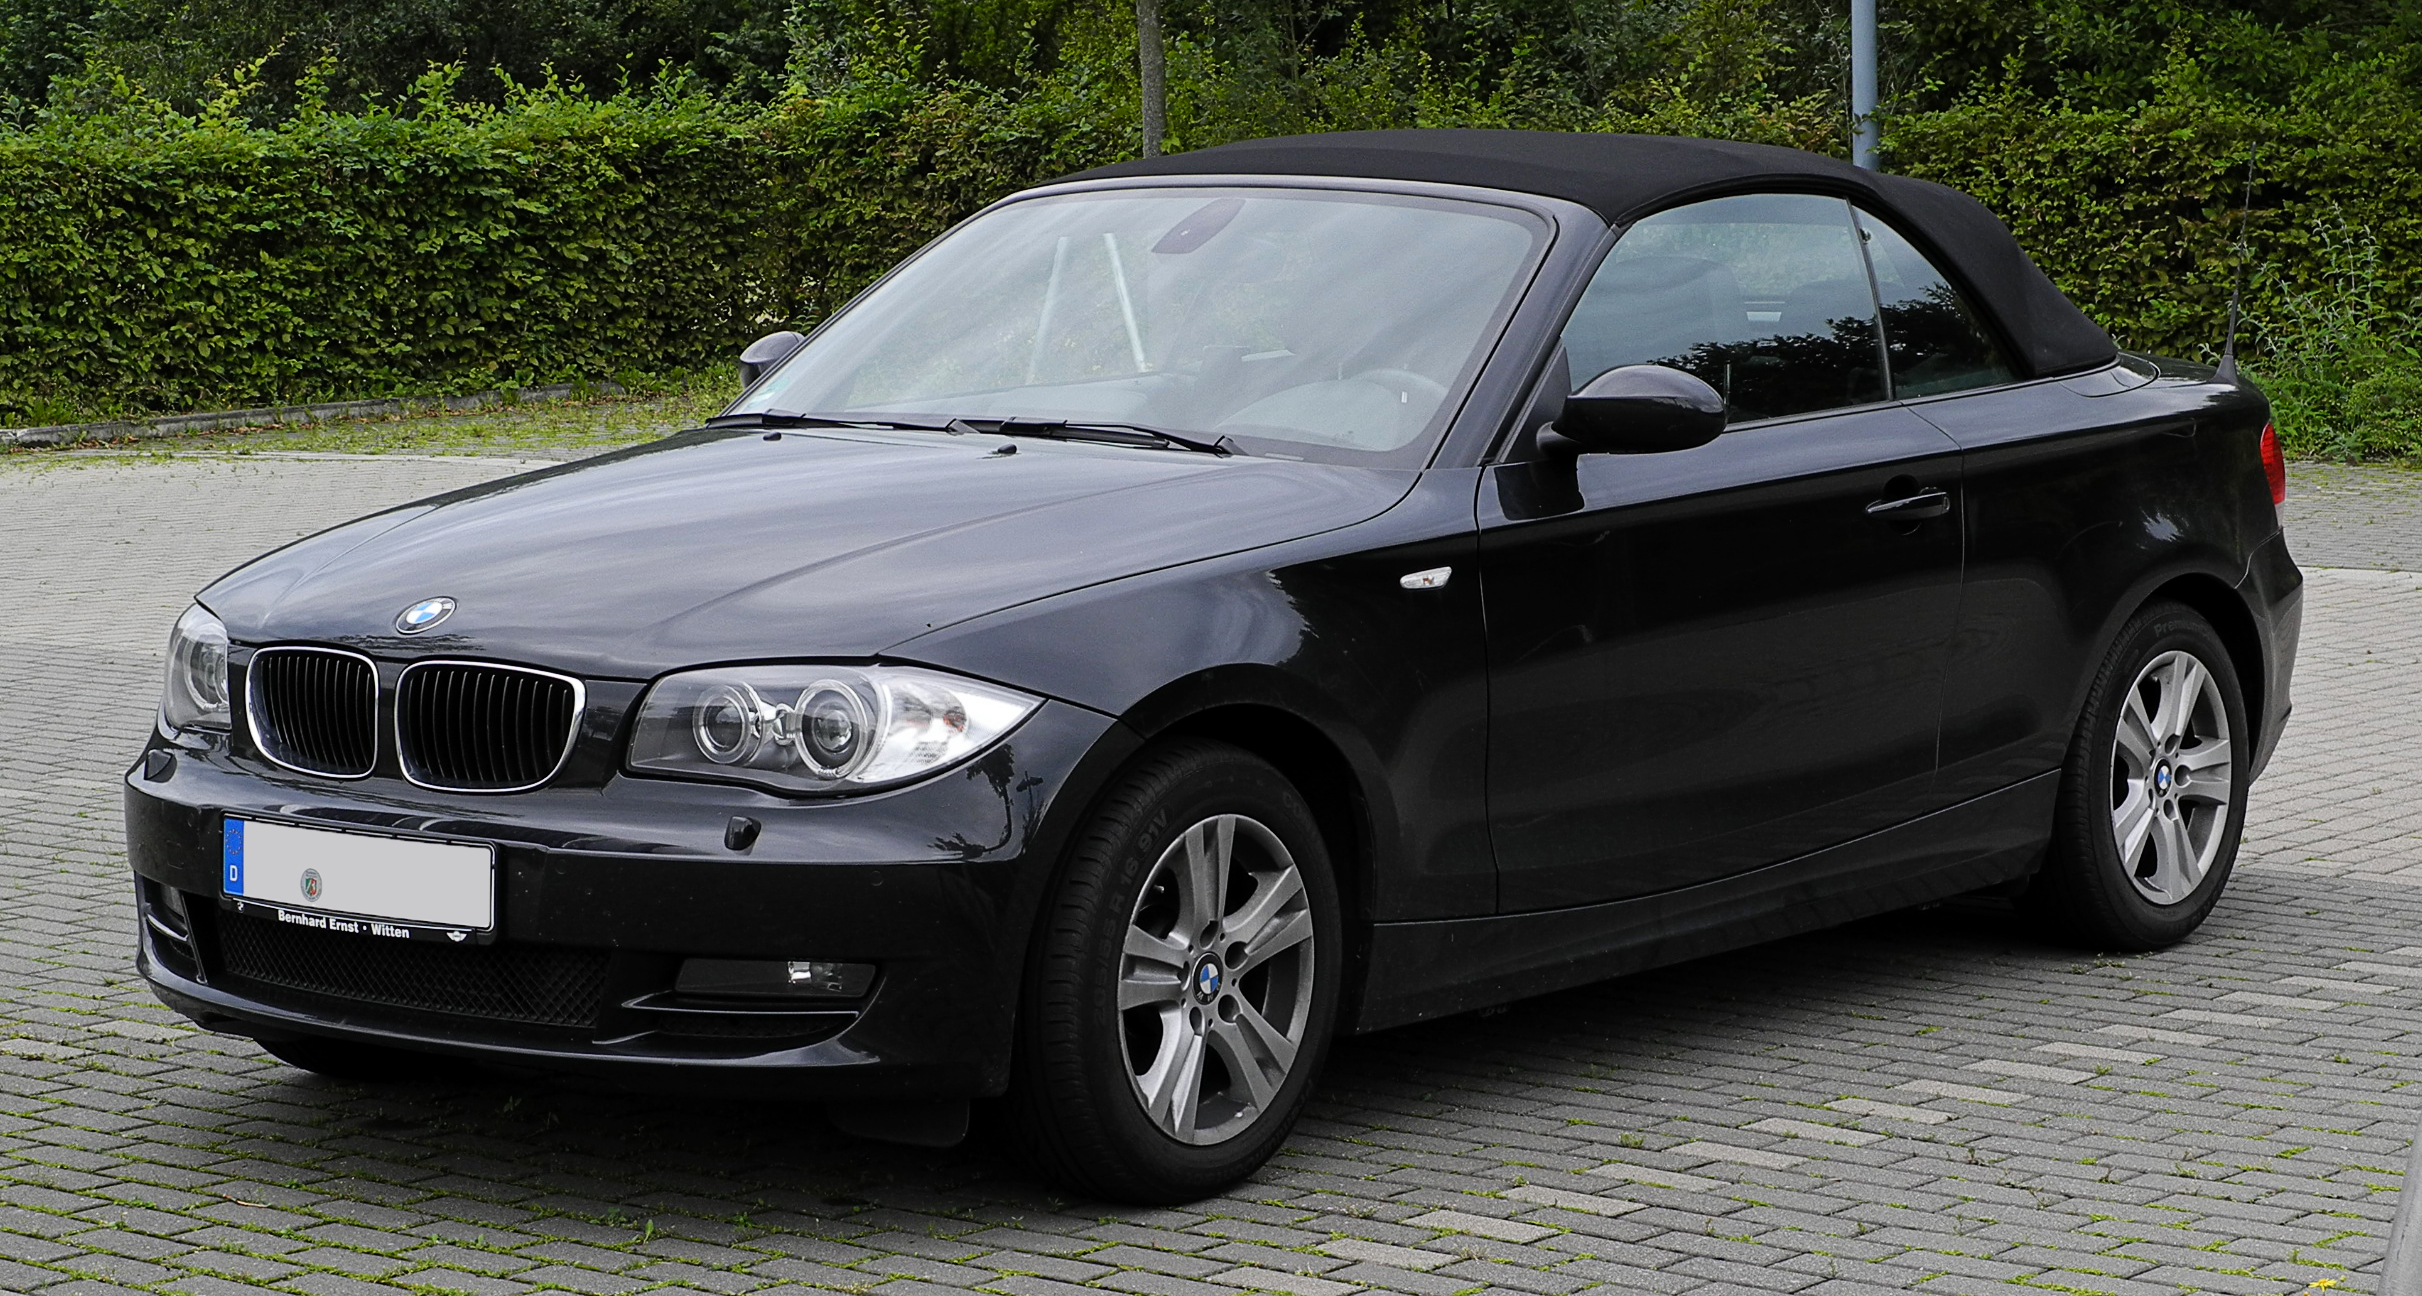 Build A BMW >> File:BMW 120d Cabriolet (E88) – Frontansicht, 28. August ...